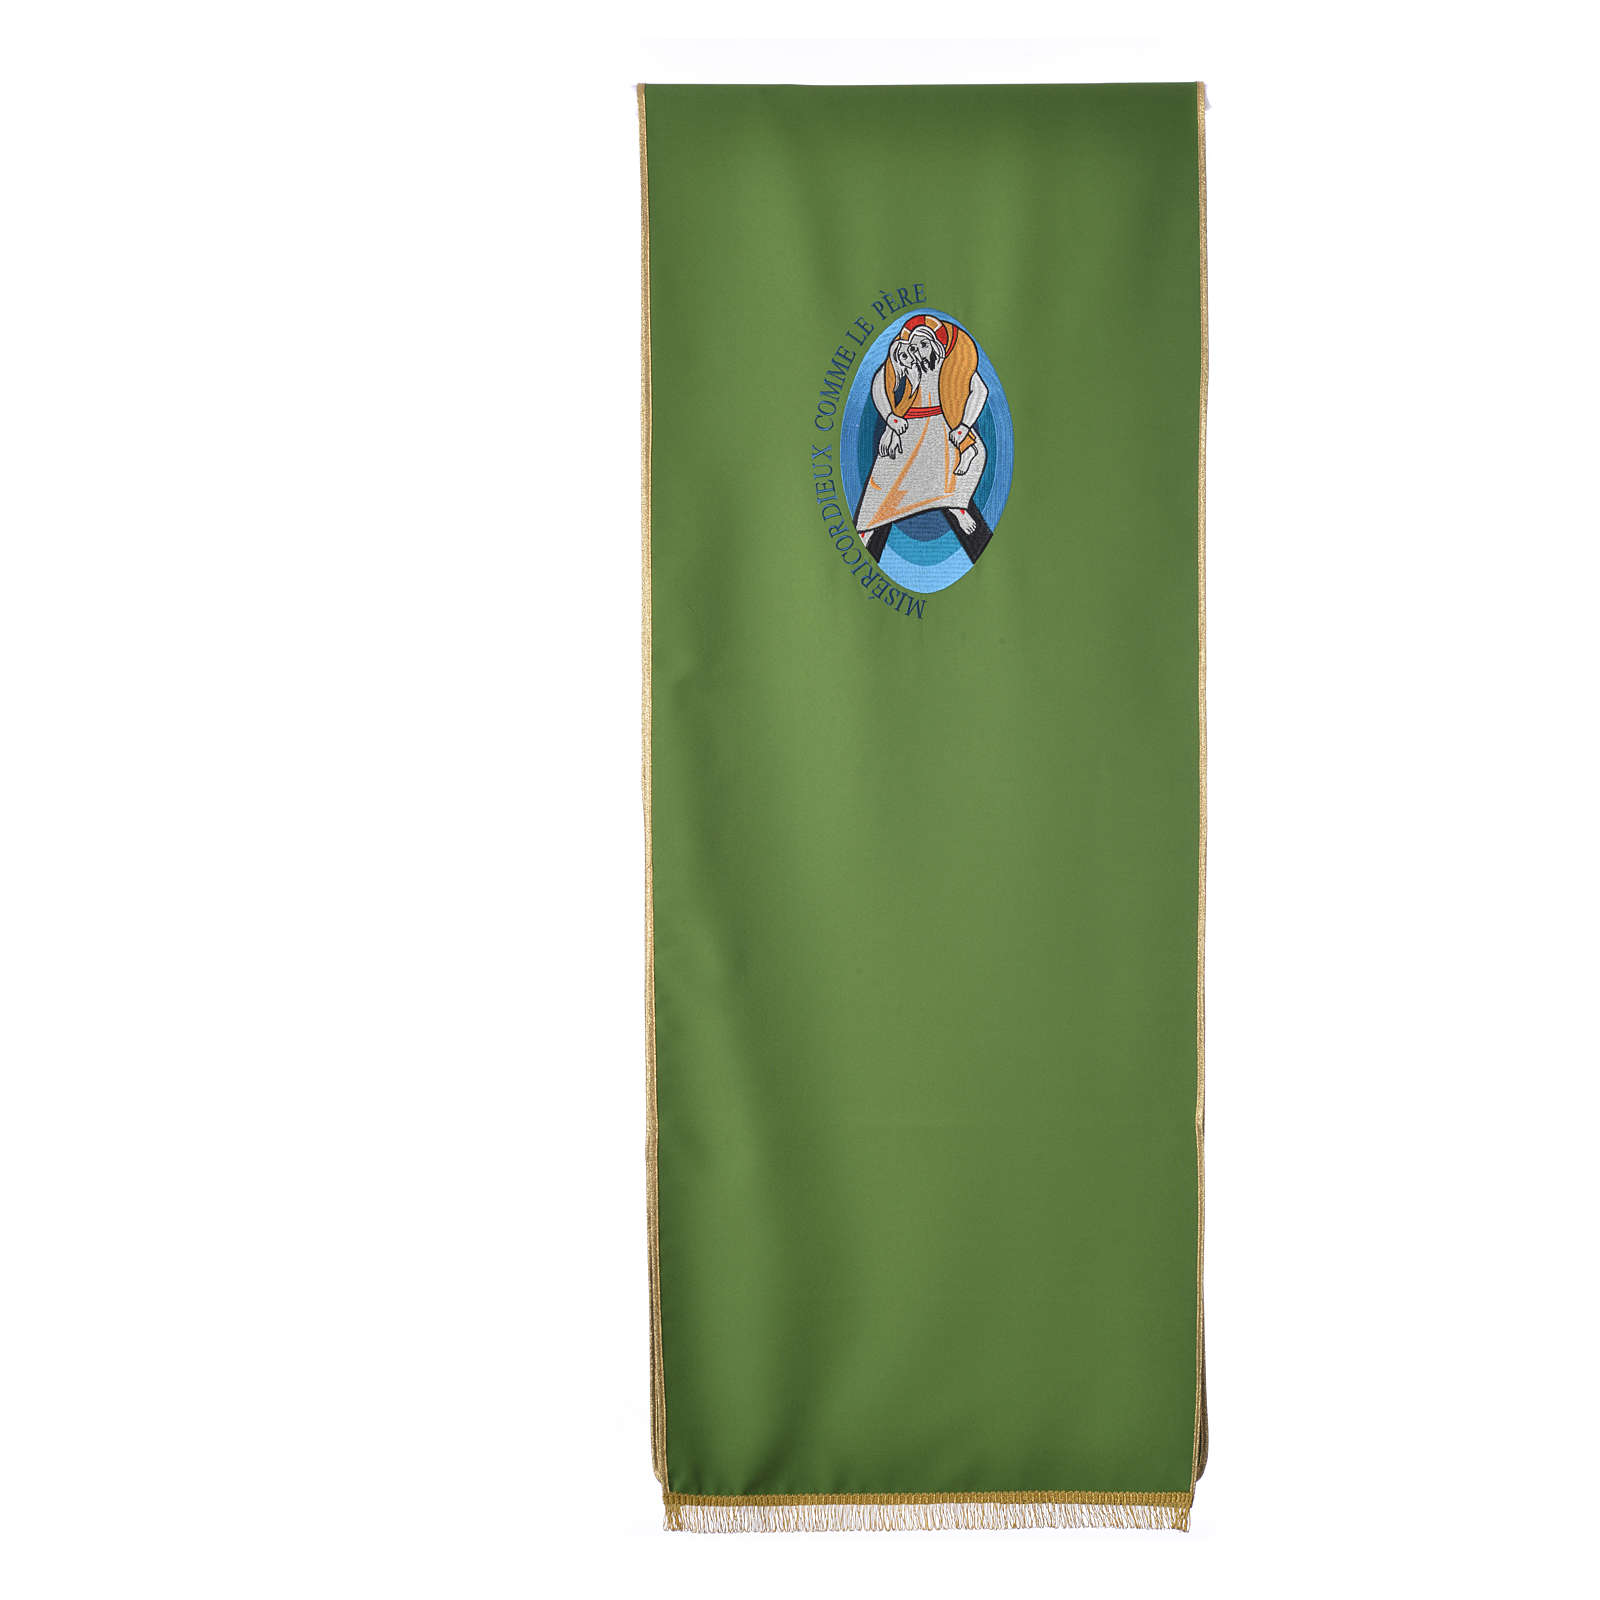 STOCK Jubilee lectern cover with FRENCH machine embroided logo 4